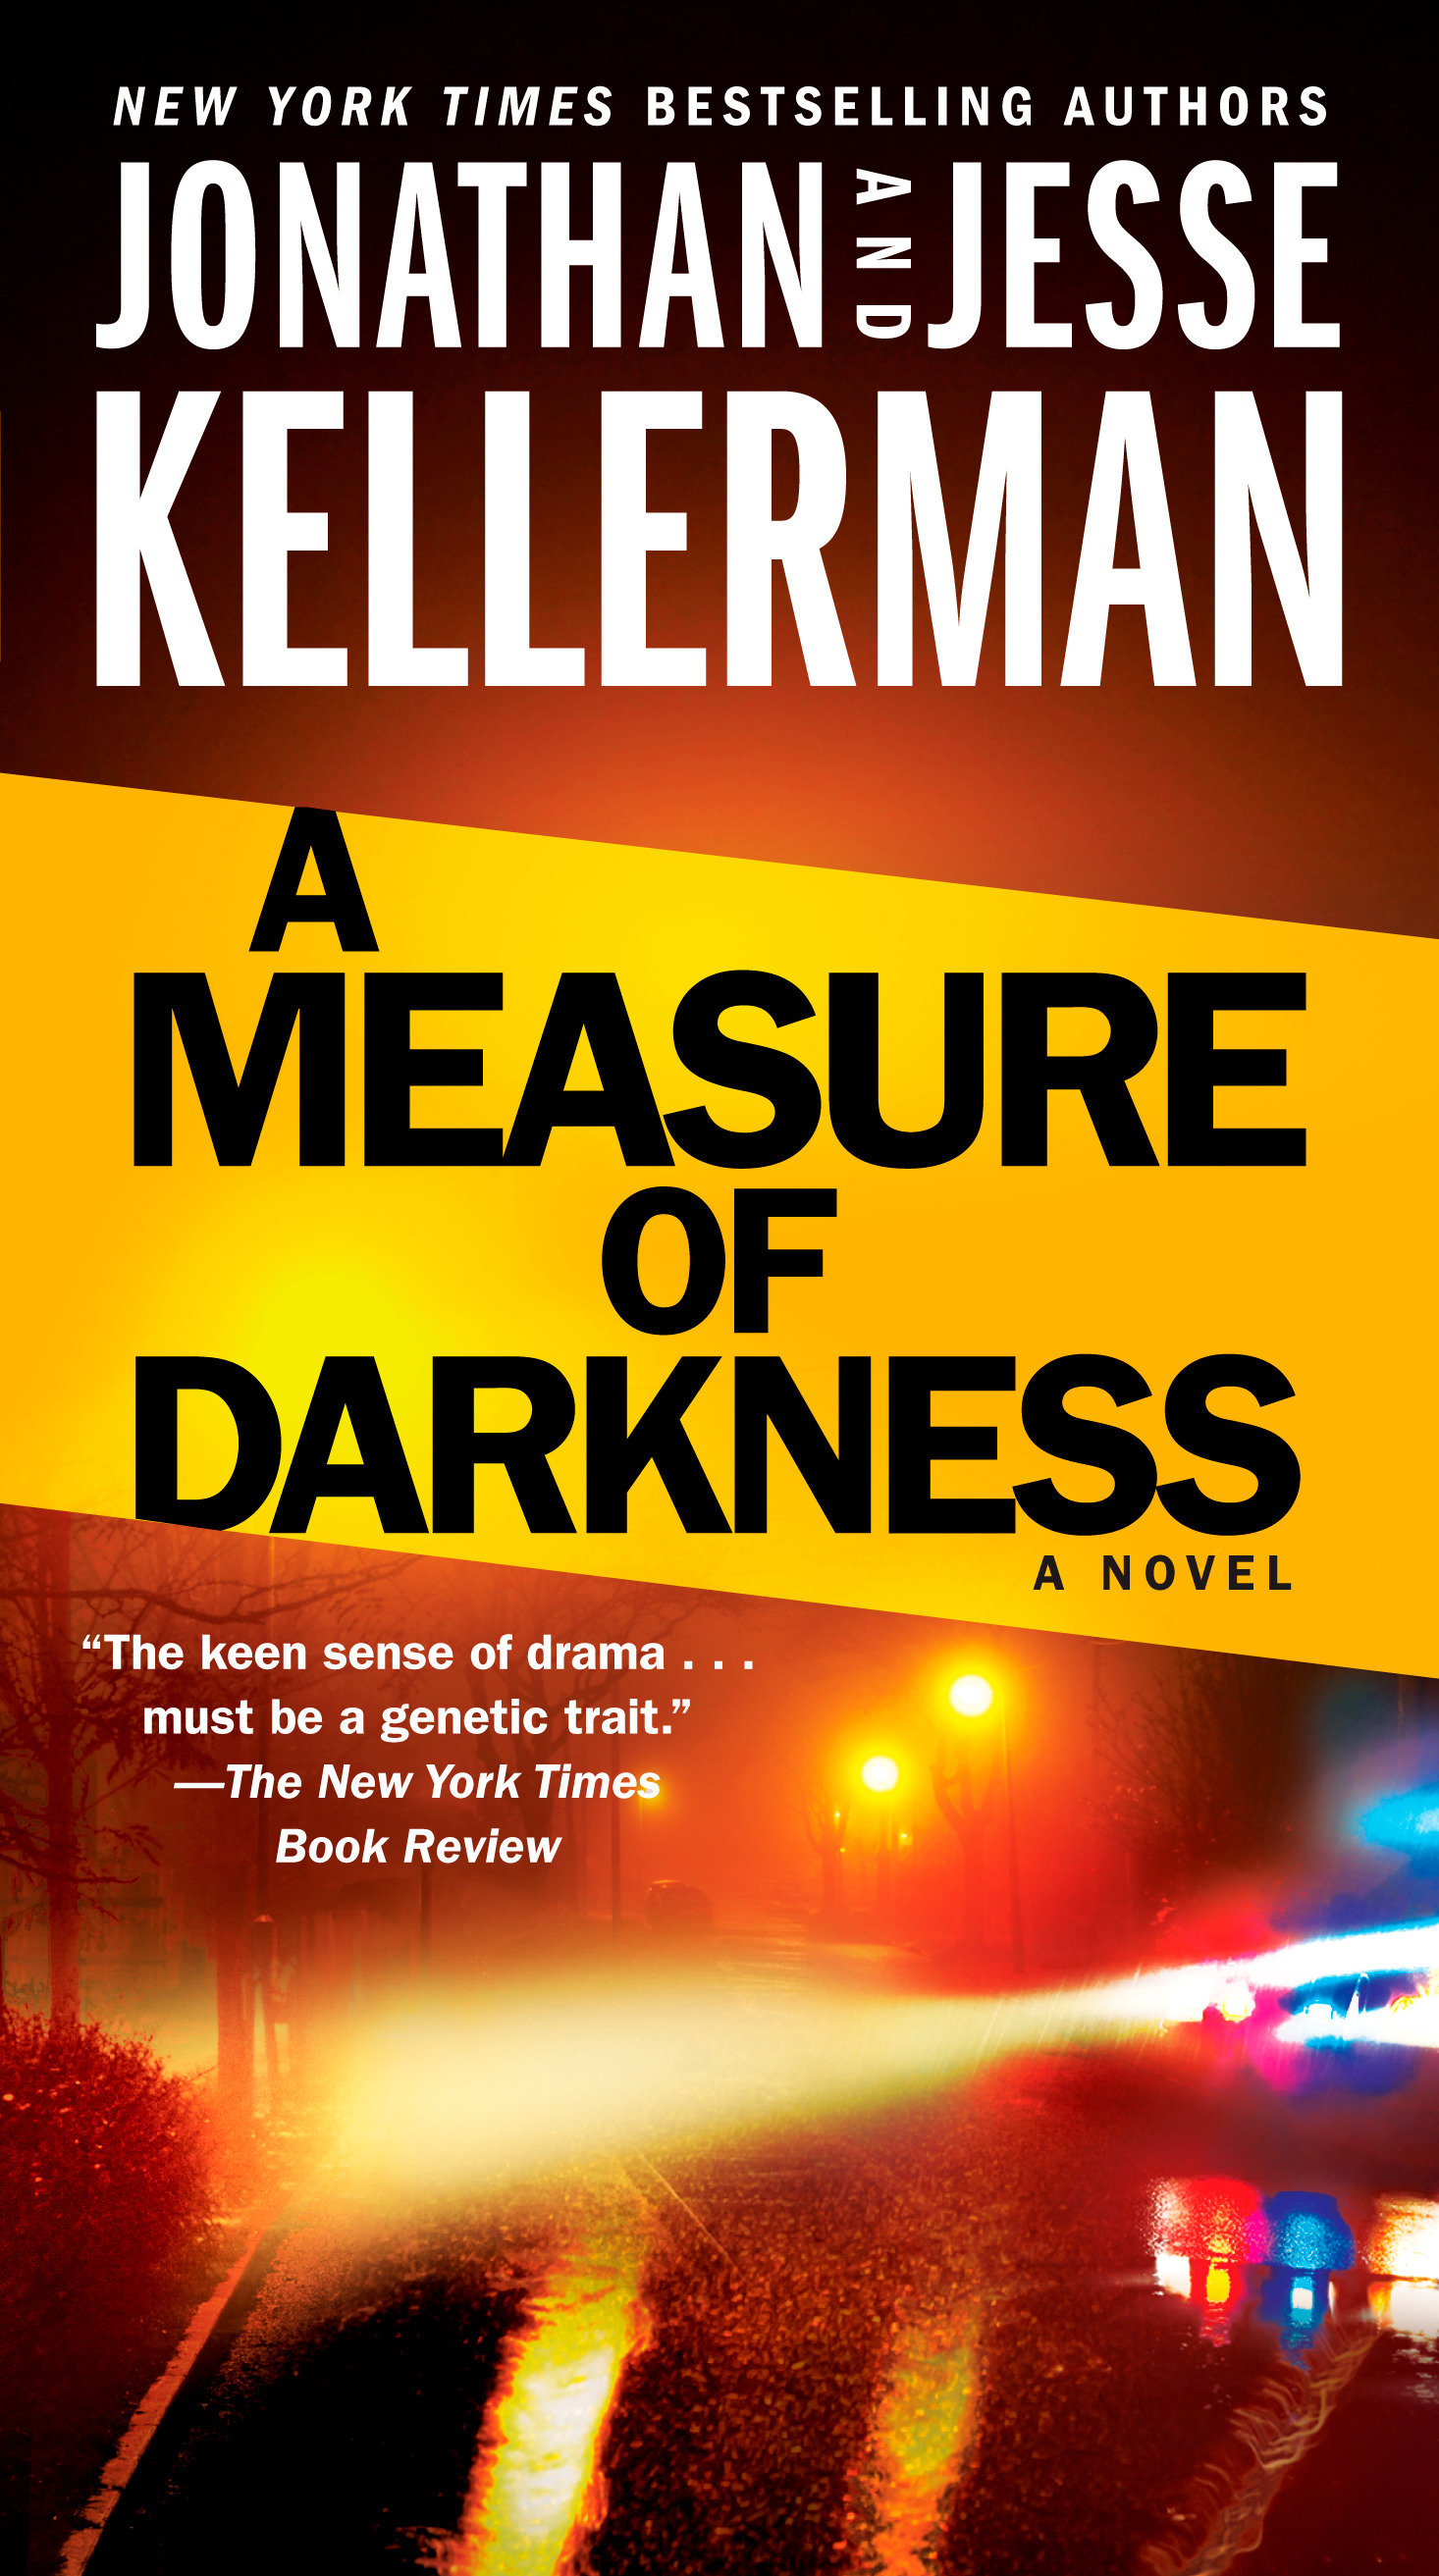 A Measure of Darkness A Novel